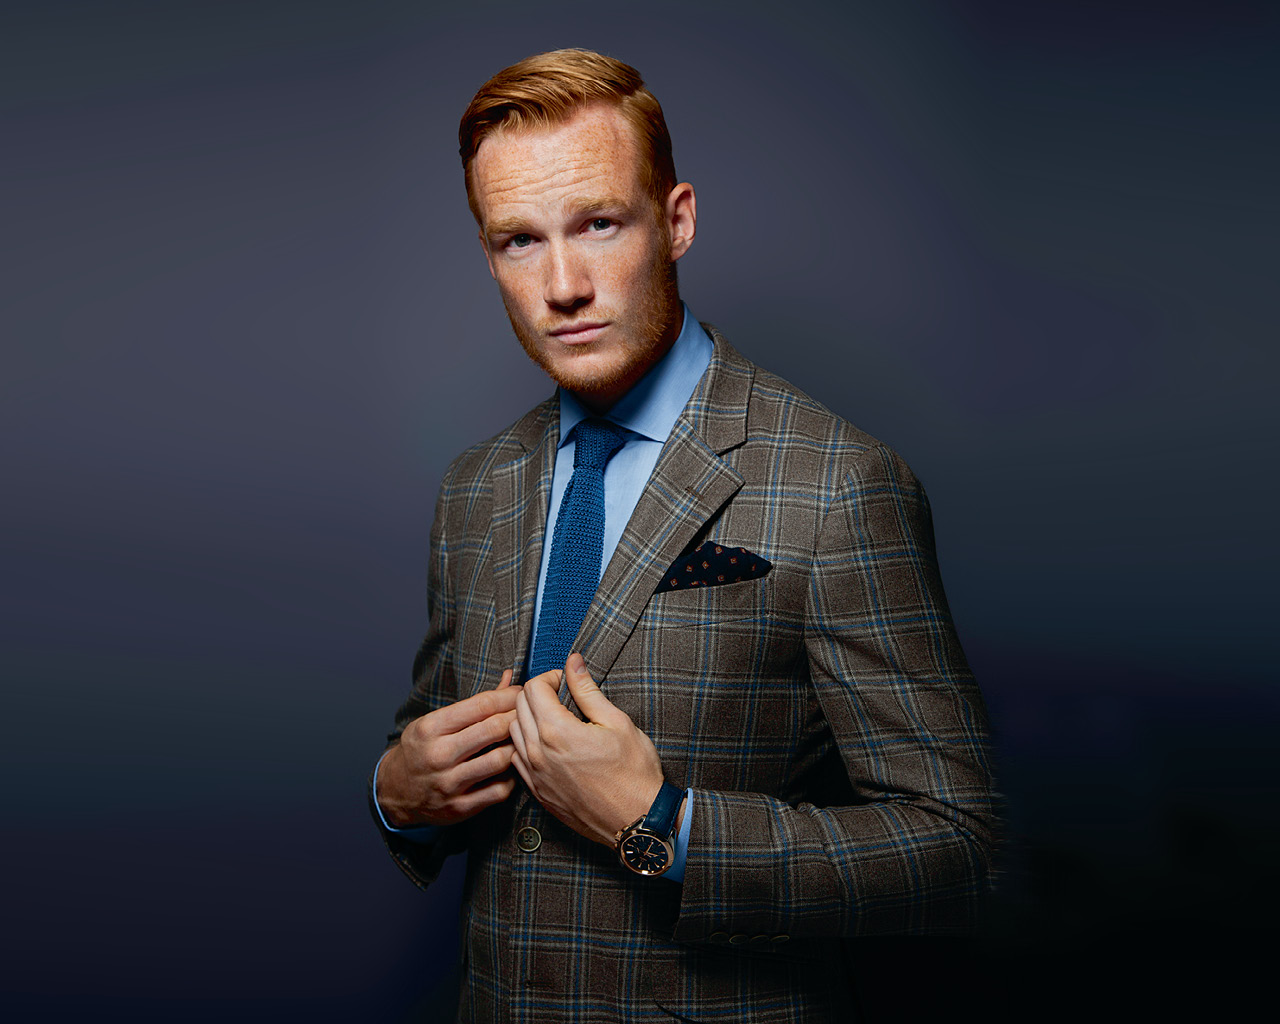 1280x1024 - Greg Rutherford Wallpapers 3